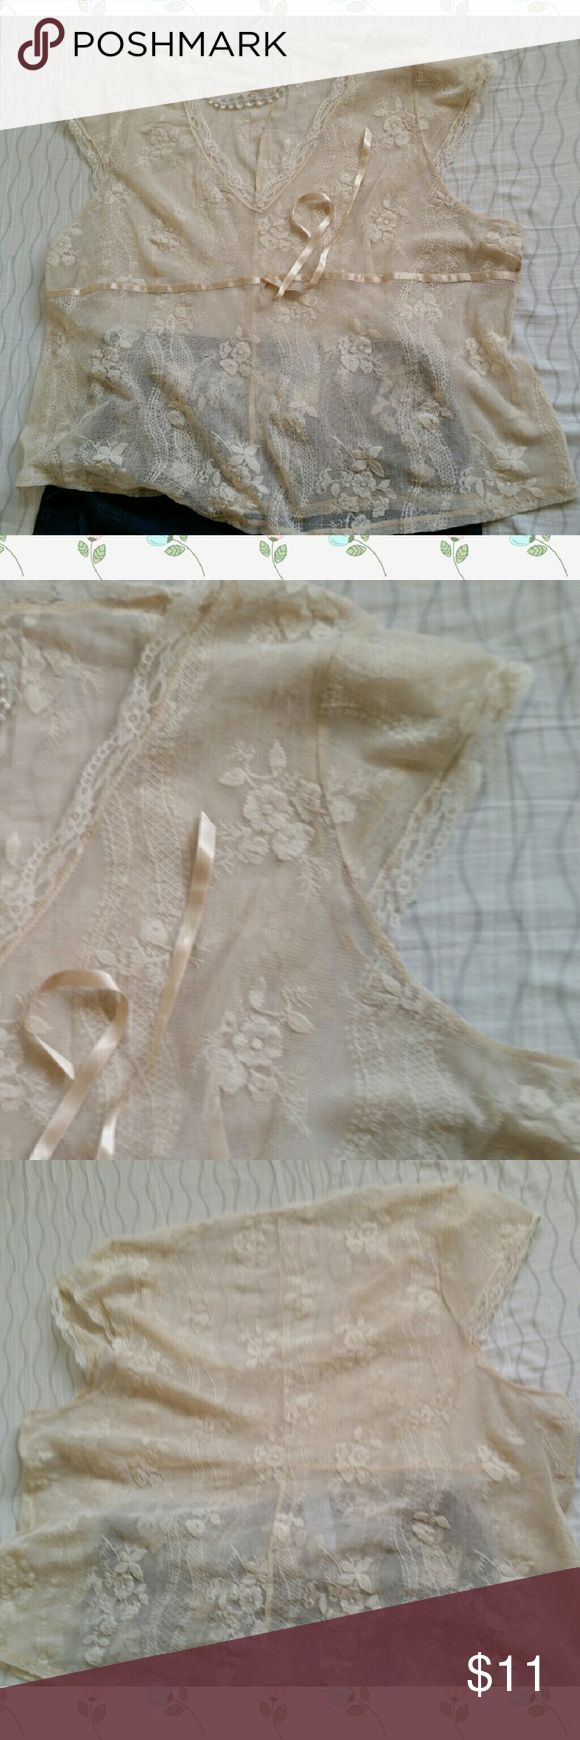 Vintage Cream Lace Top Vintage Cream Lace Top 2X Some lace is worn, but in great vintage shape no tags for brand or size but can fit a 2X with a nice flow. Has lace tie in front, does not pull fabric in sinched when tied.  Purchased at vintage store. Will need an undershirt to wear as there is no lining.  See my closet to bundle and save! Tops Blouses